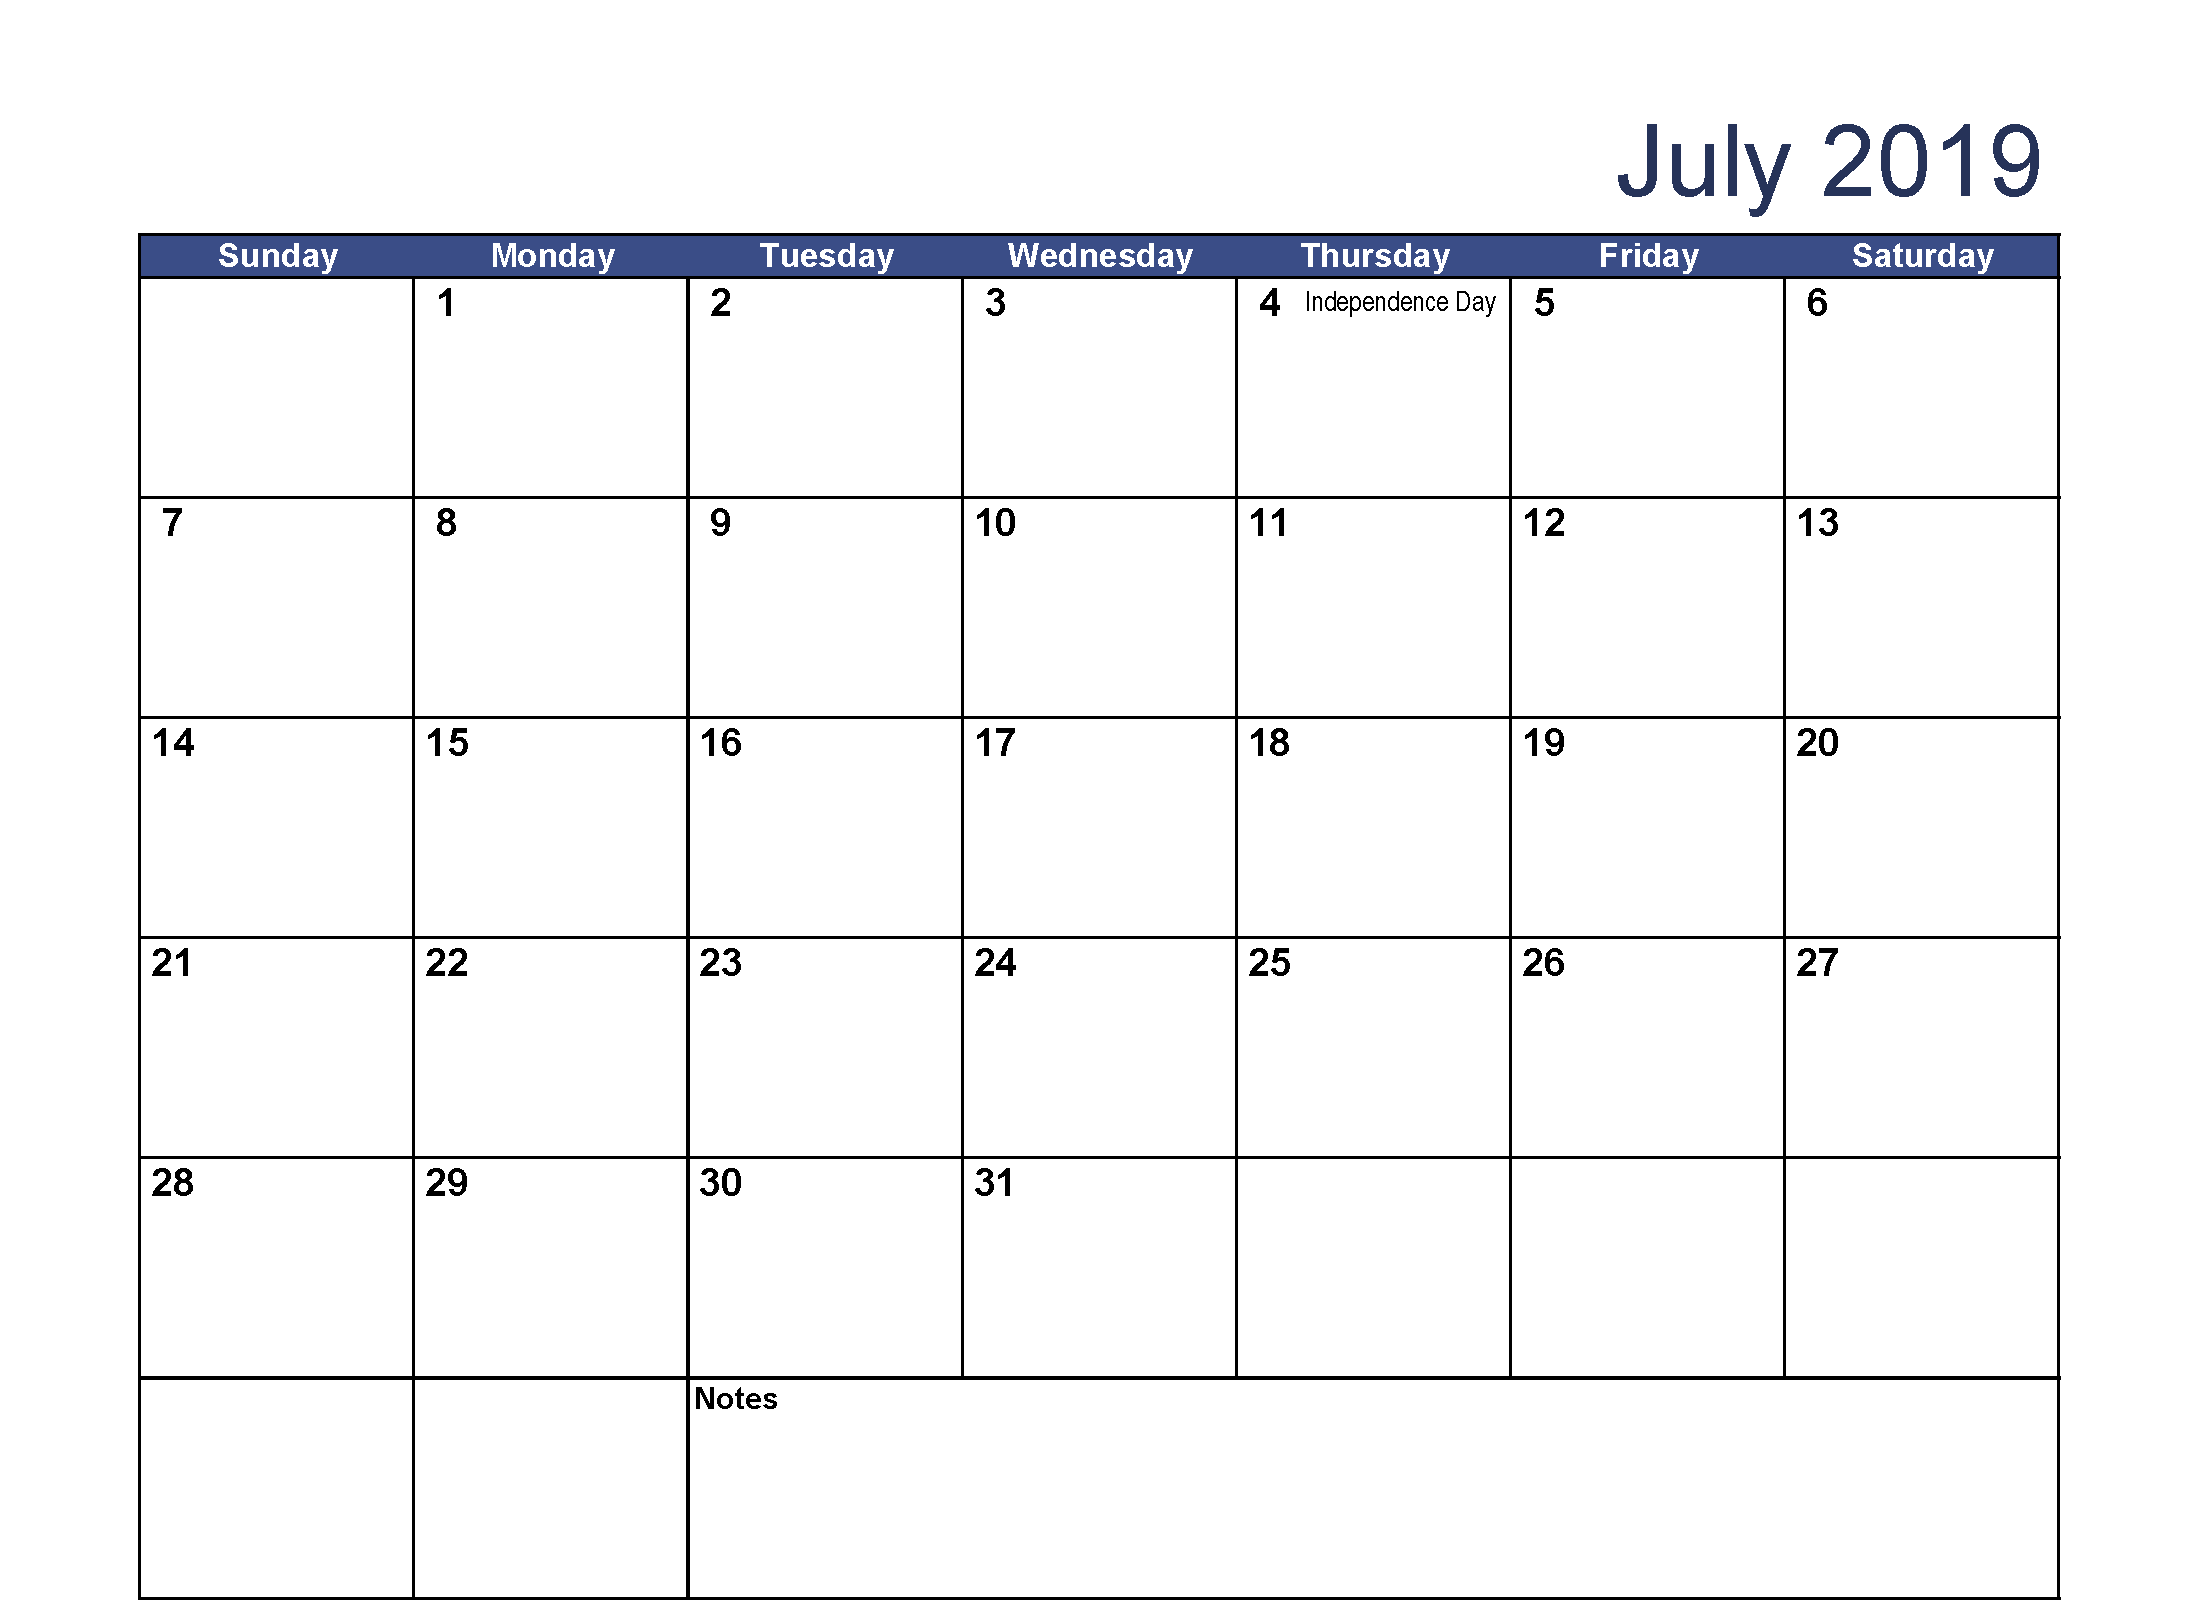 photo about July Calendar Printable named July 2019 Calendar with Holiday seasons Printable - Totally free August